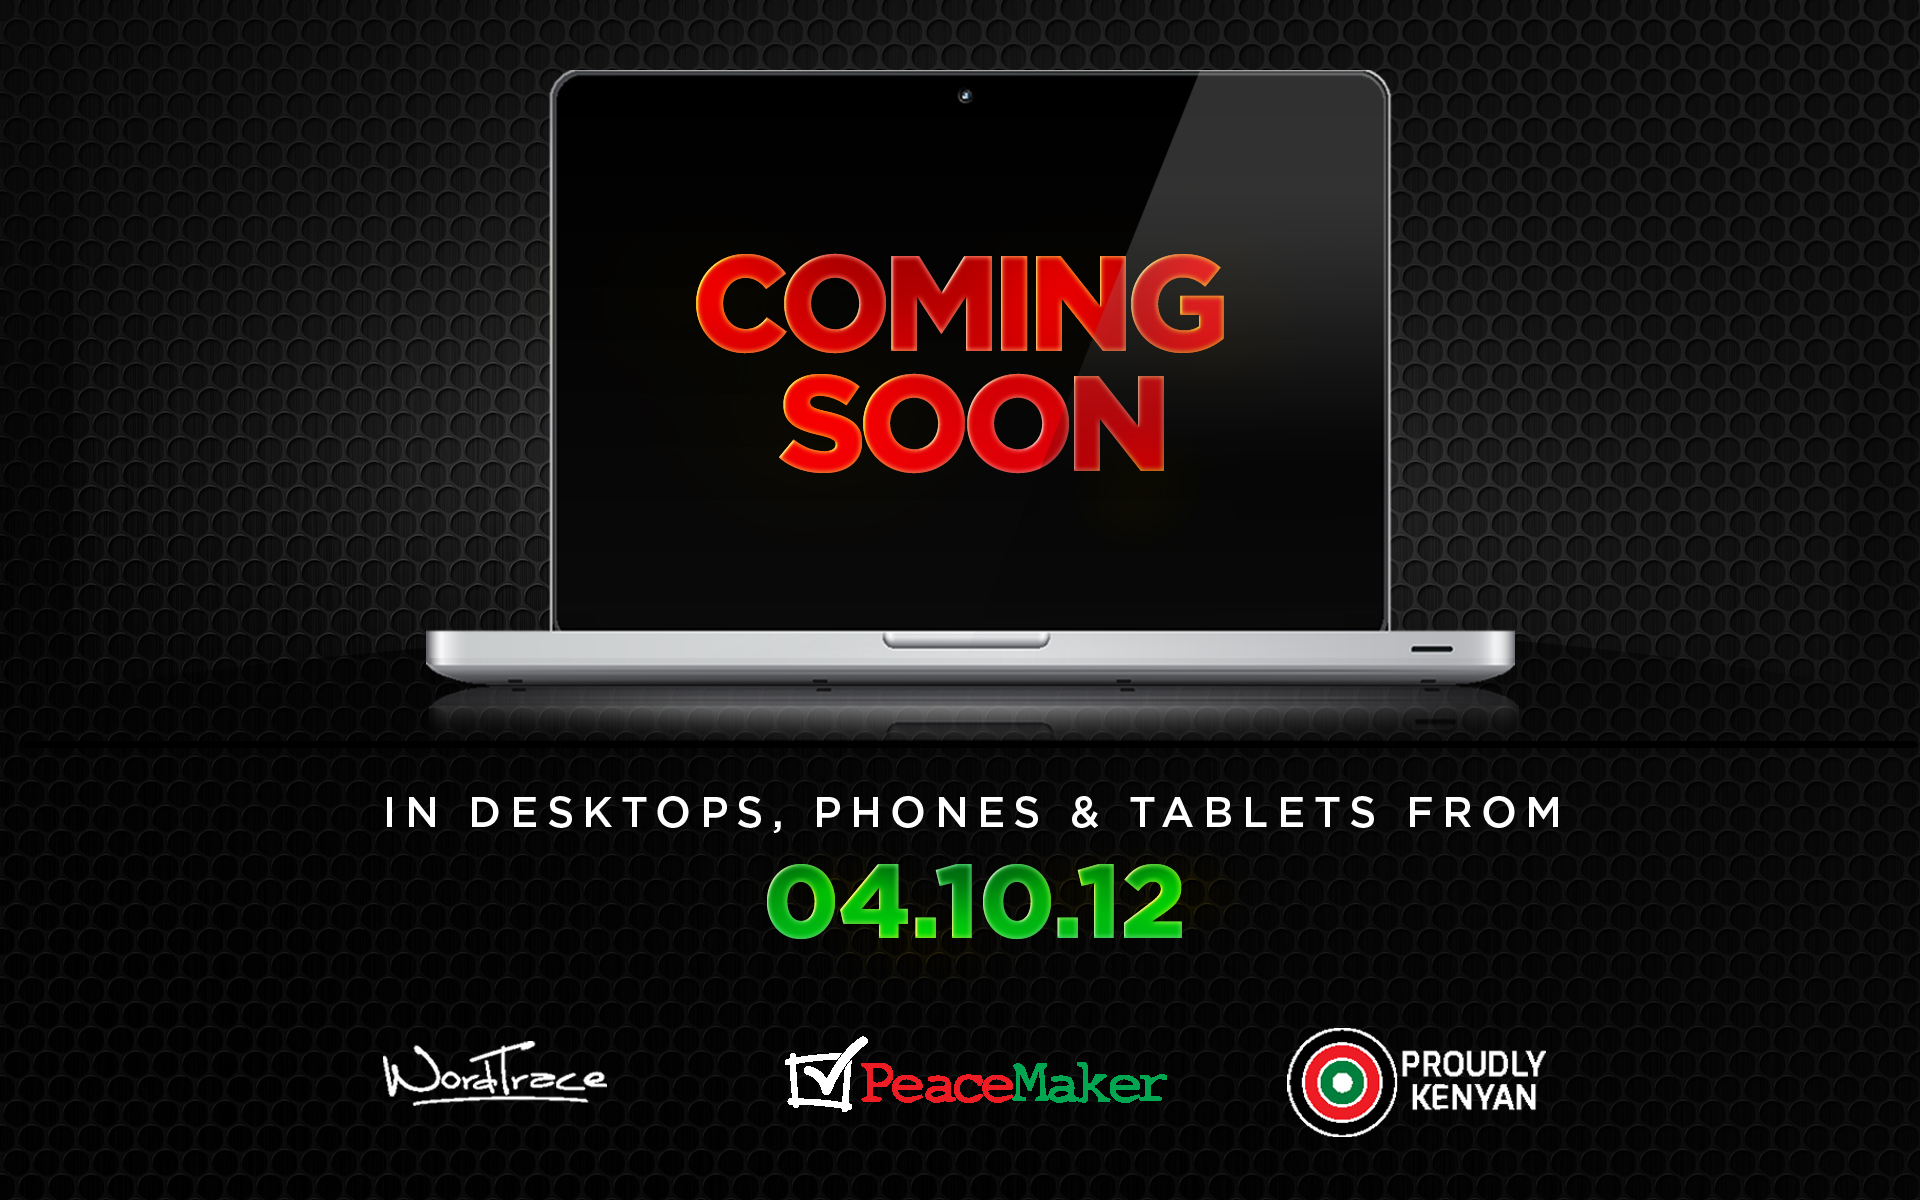 Change Is Coming Quotes Wallpaper Campaign Poster Teaser Wordtrace Wallpapers